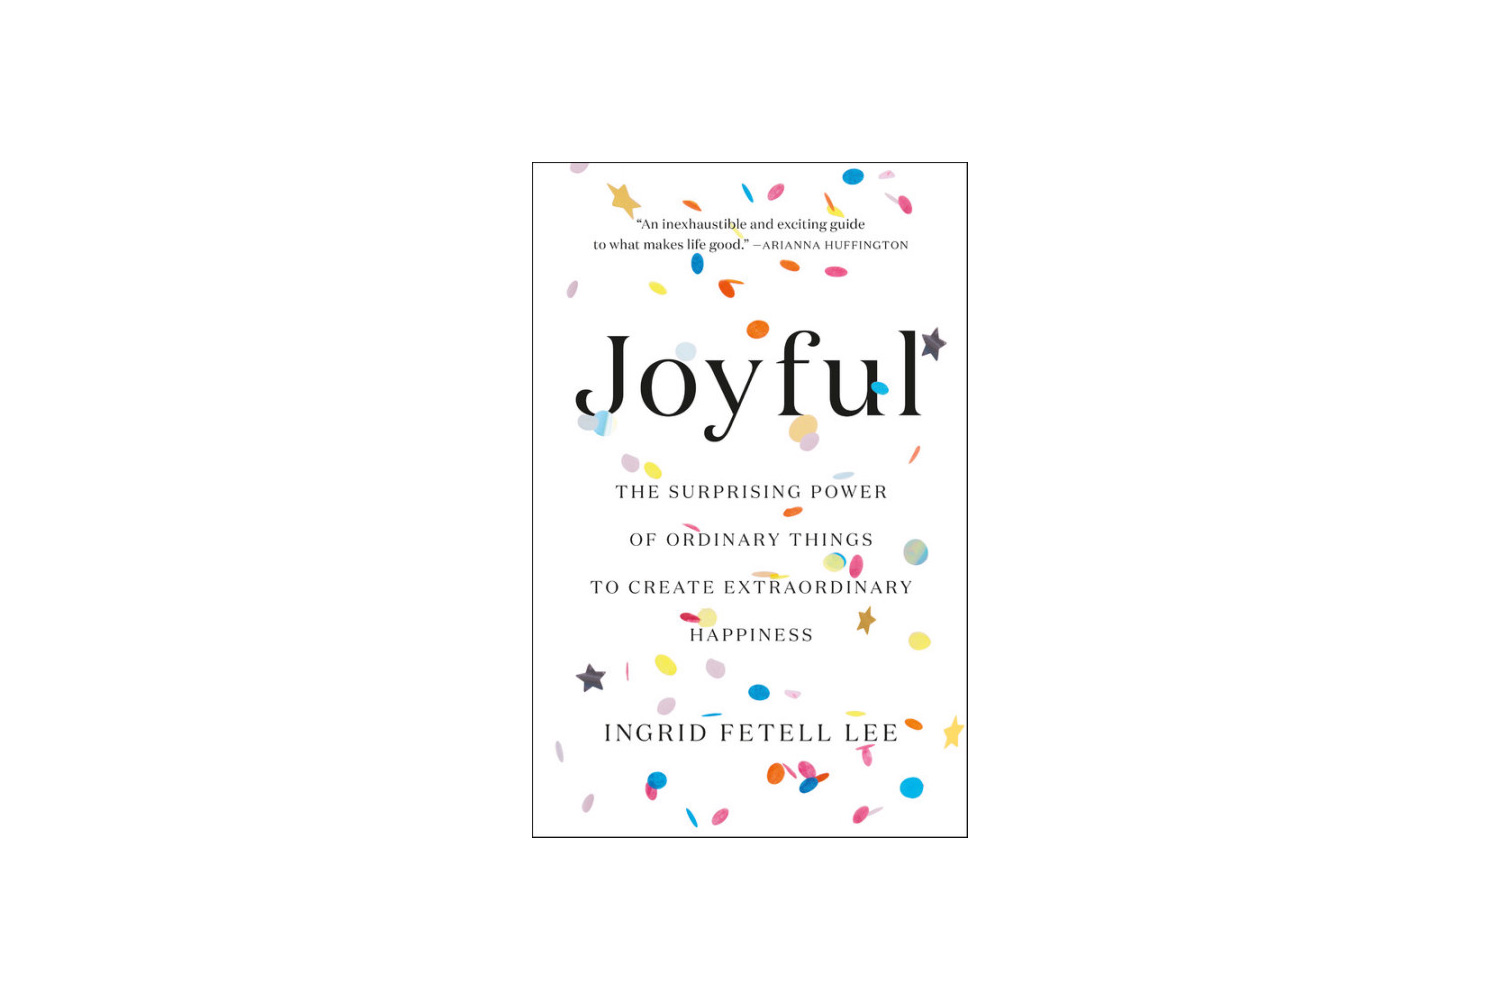 Joyful, by Ingrid Fetell Lee